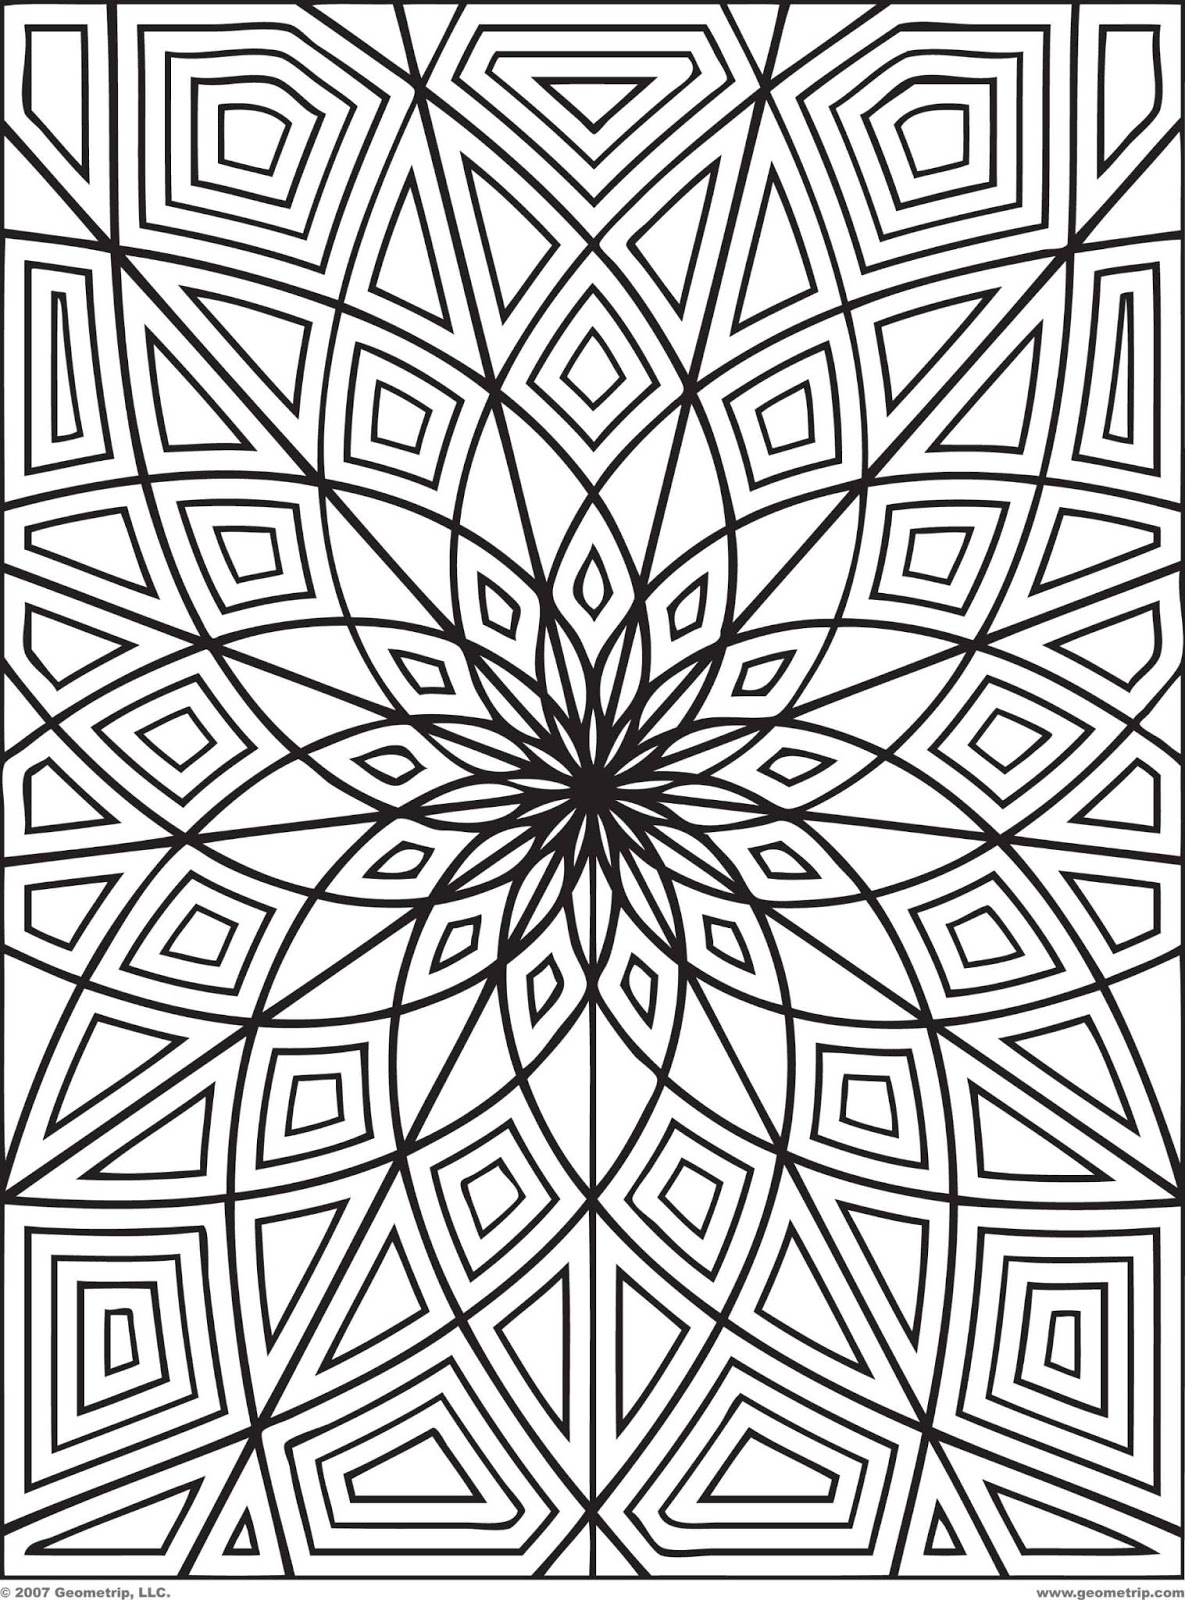 Fun Adult Coloring Pages To Print Out For Free